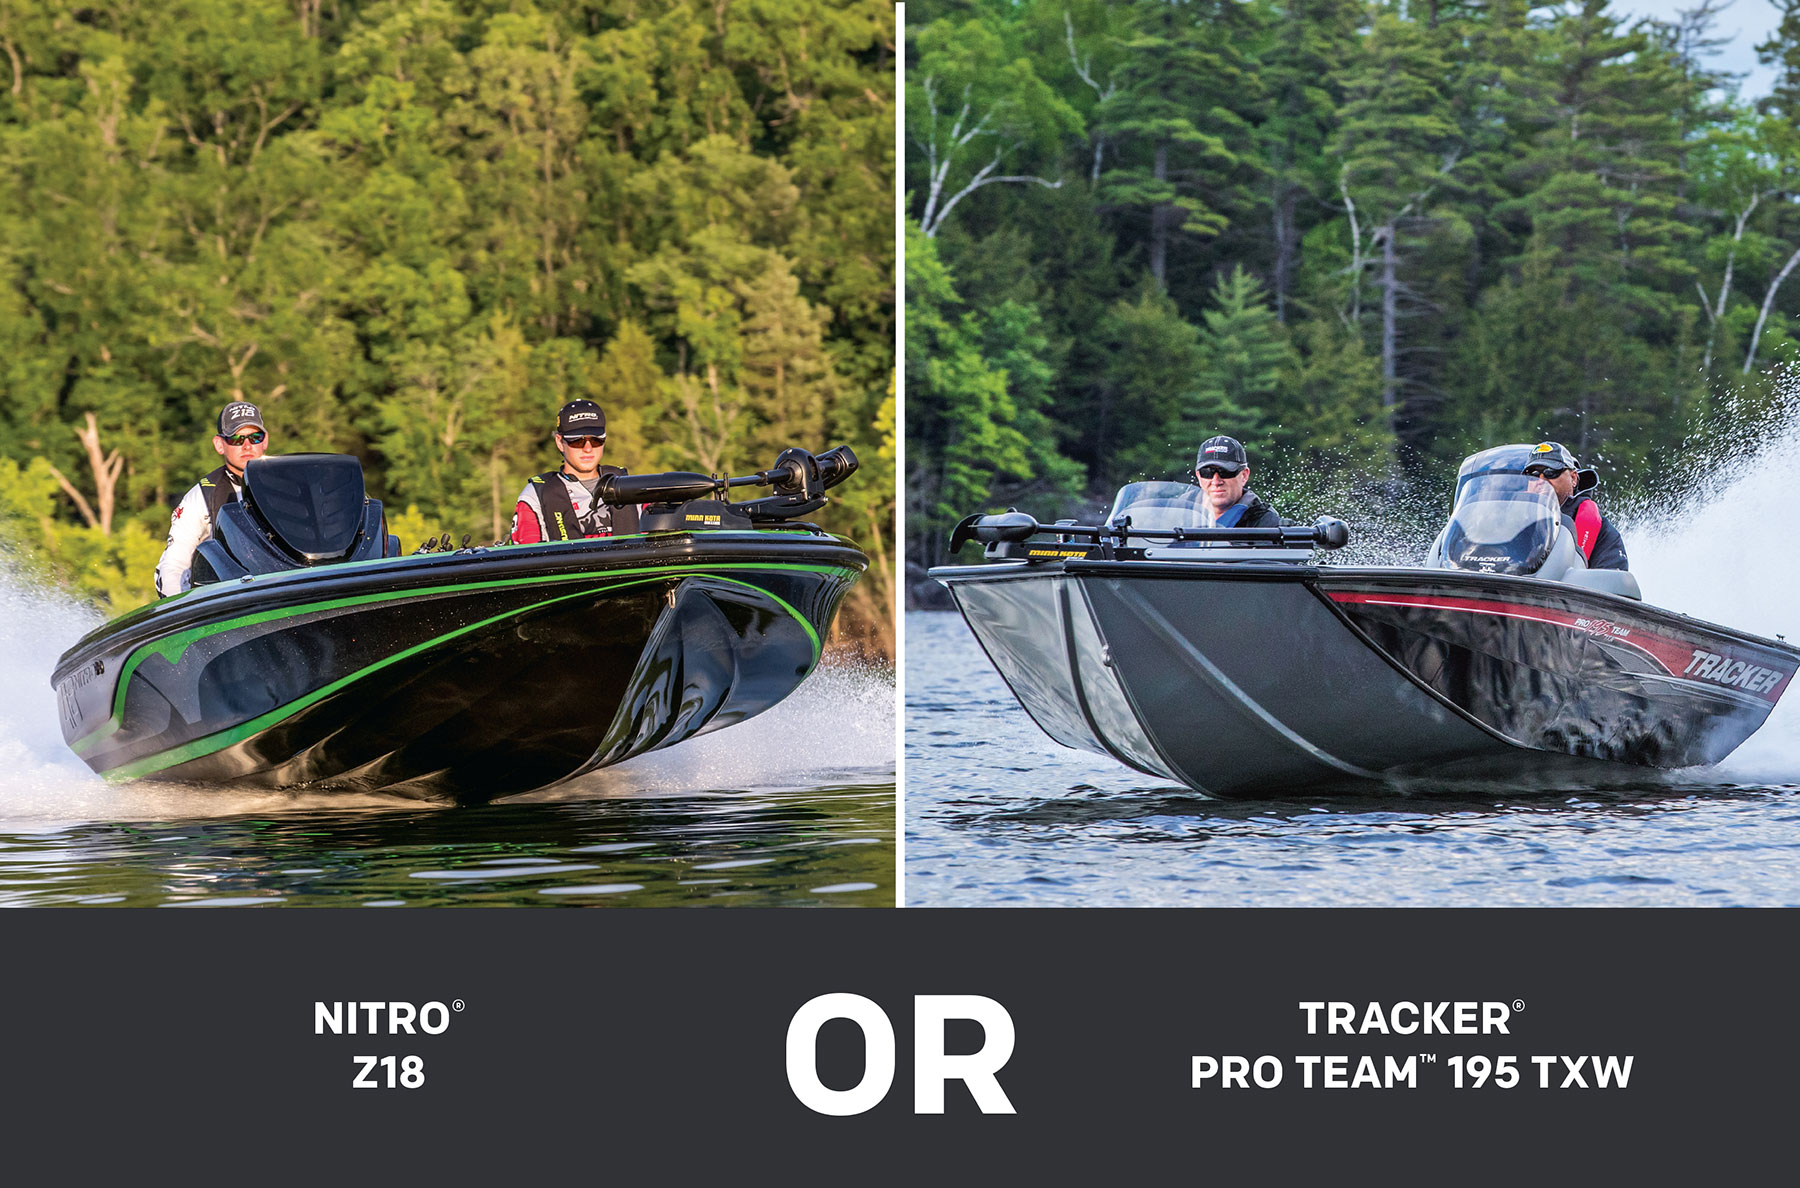 Tracker 195 Txw And Nitro Z18 Model Comparison